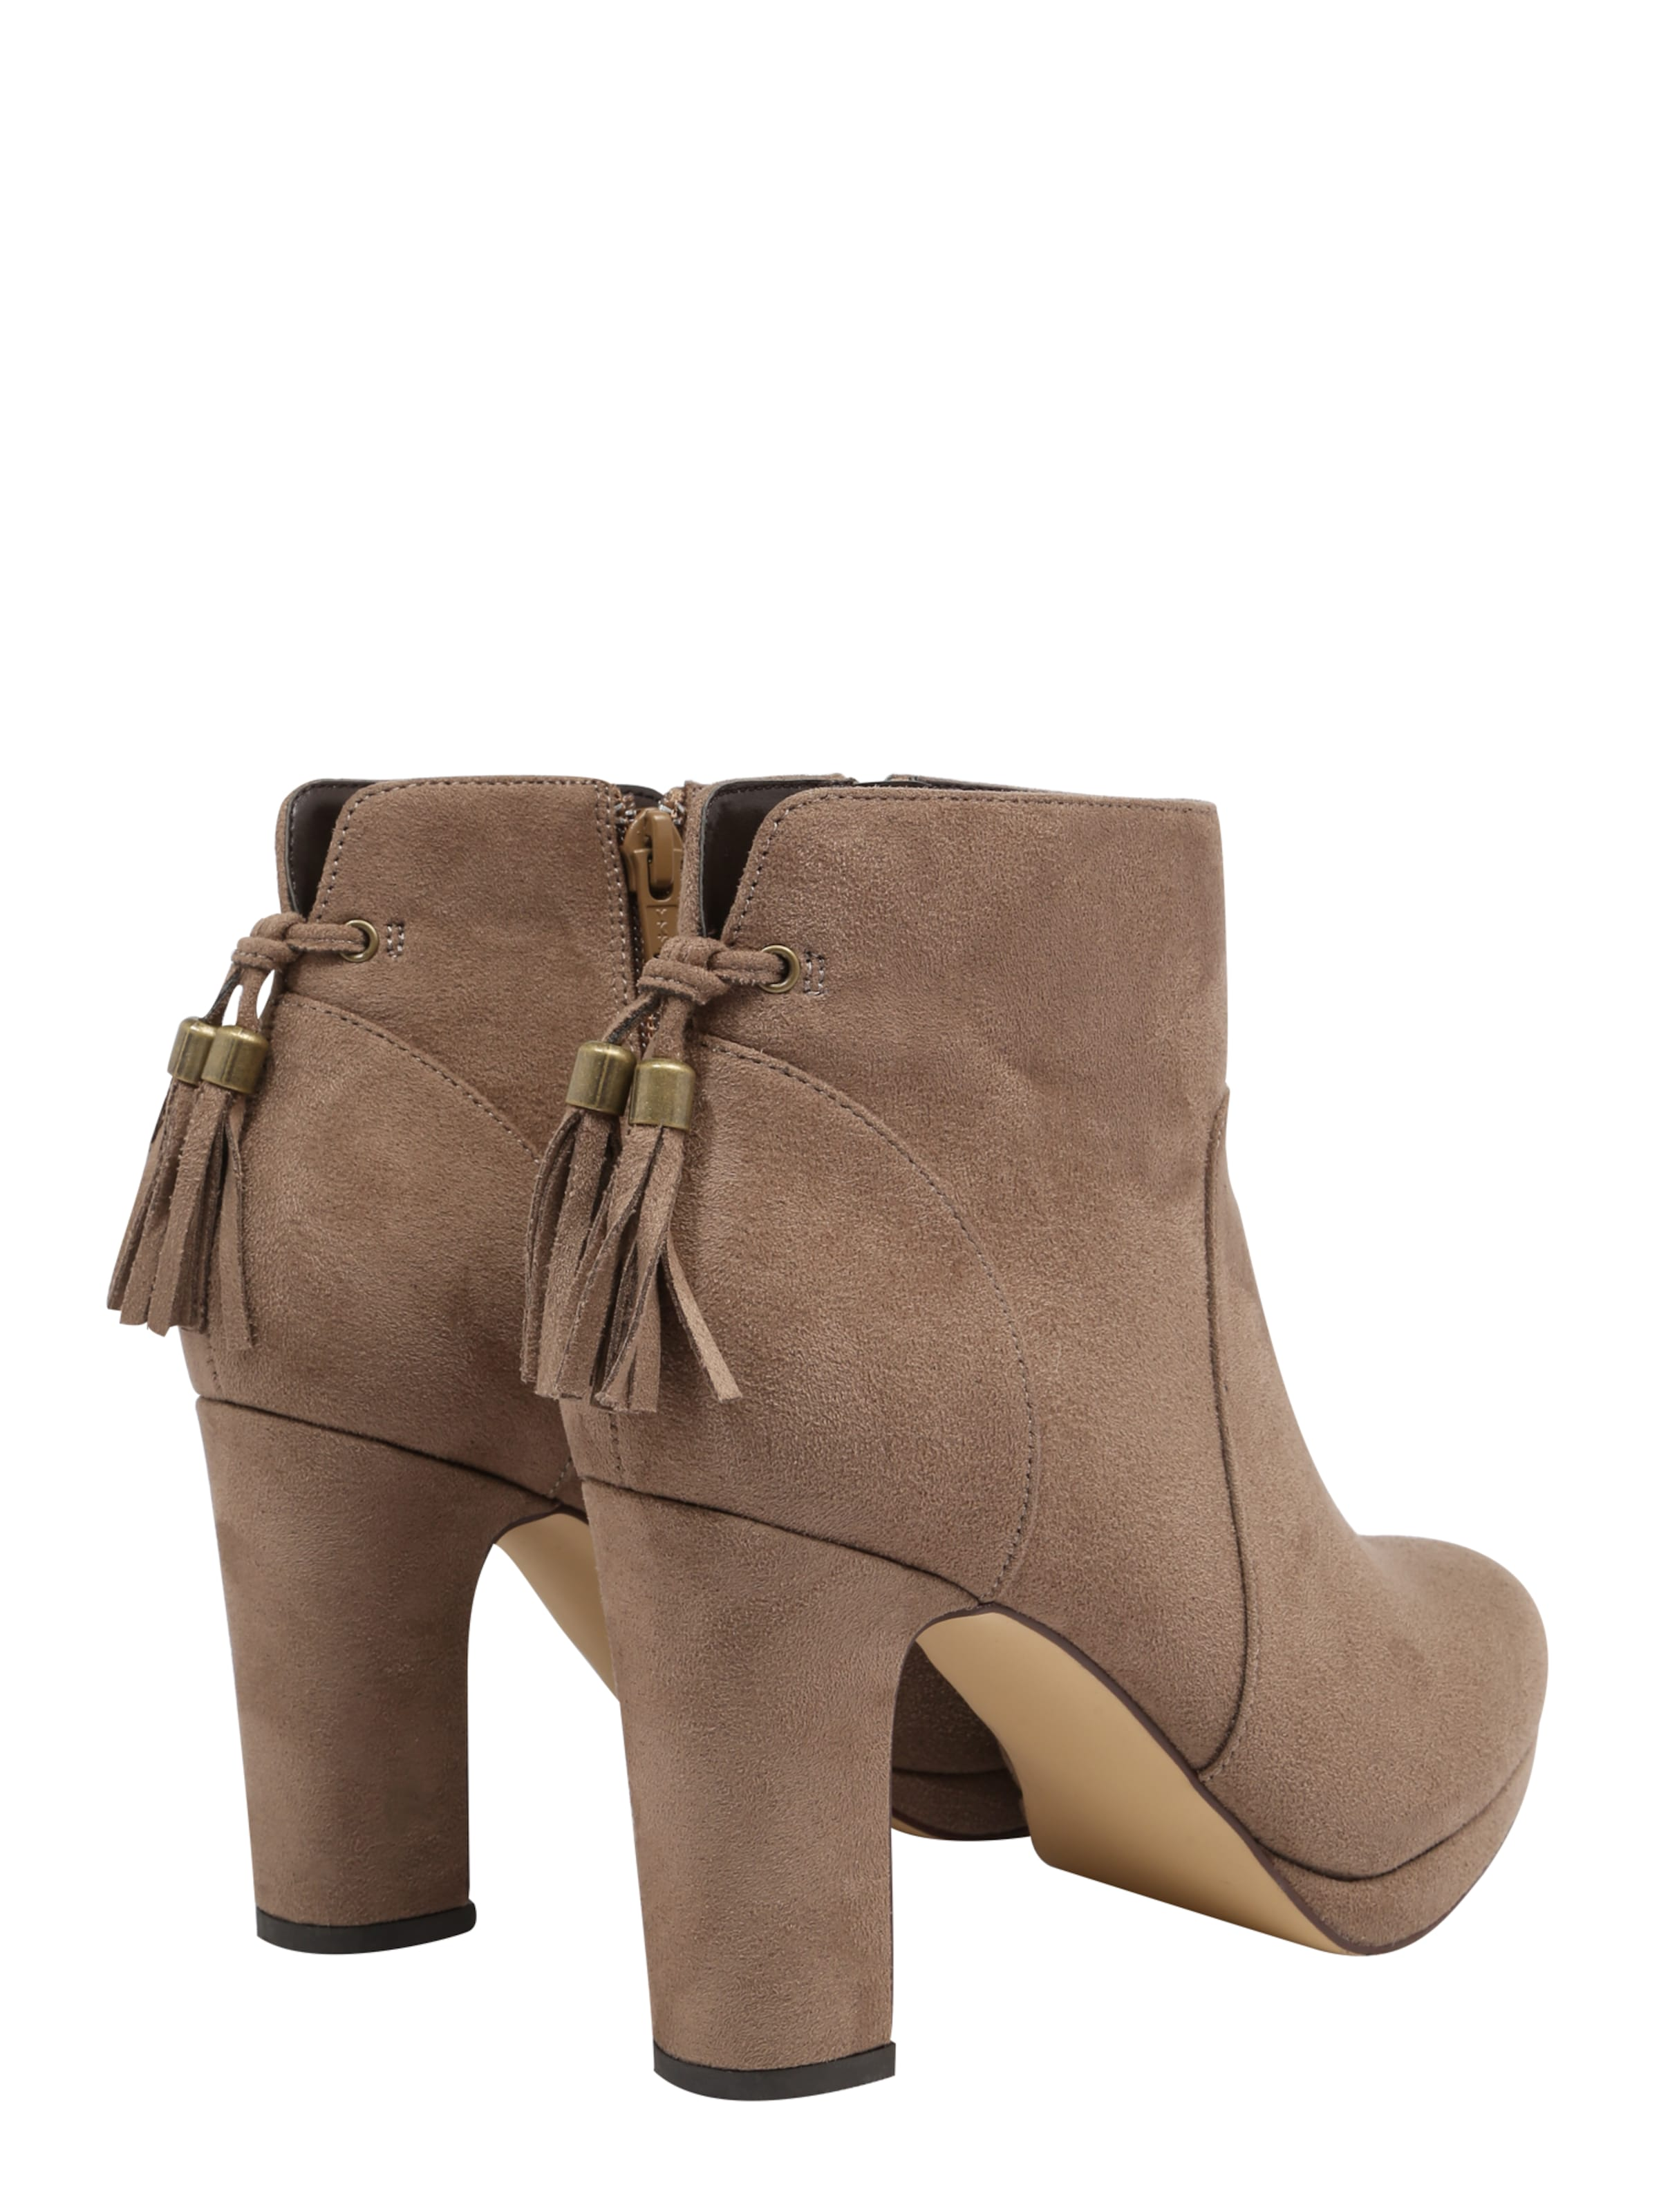 You Beige boot 'alessandra' In About Ankle mYgyvIb7f6